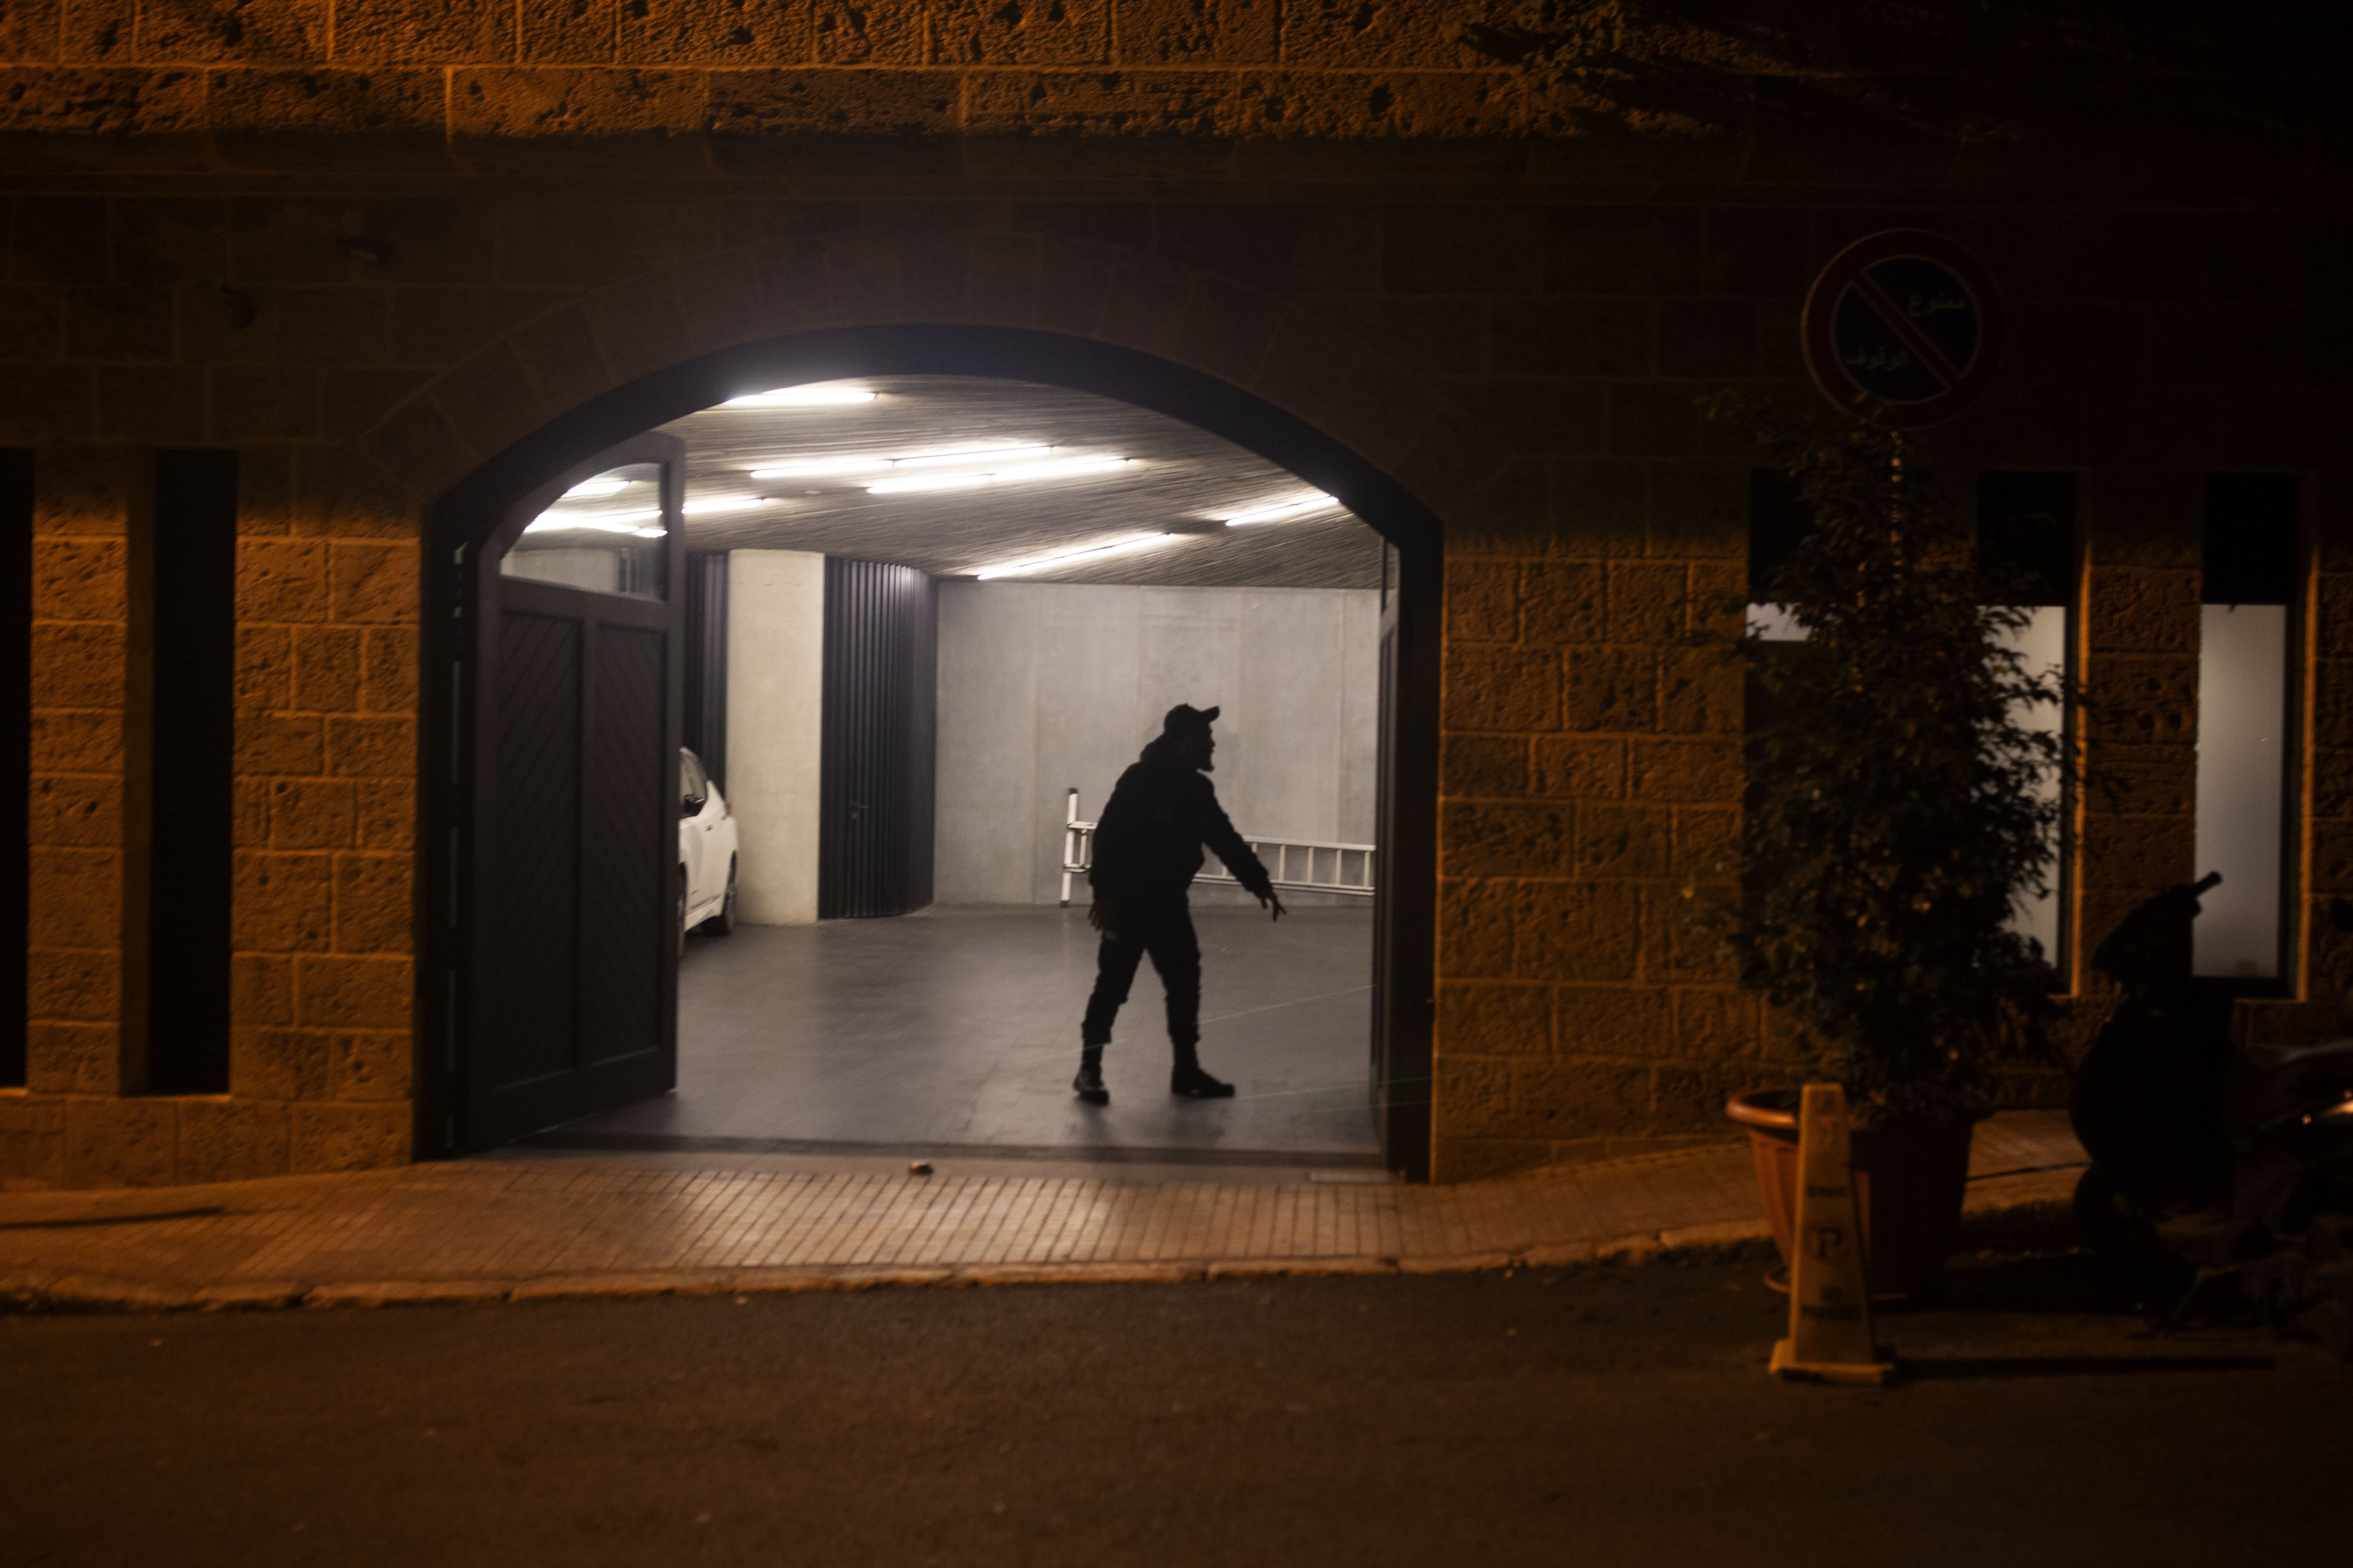 A security guard stands in the garage at the residence of former Nissan Chairman Carlos Ghosn on Monday, Dec. 30, 2019 in Beirut, Lebanon. A close friend says Ghosn, who is awaiting trial in Japan, has arrived in Beirut. It was not clear how Ghosn, who is of Lebanese origins, left Japan where he is under surveillance and is expected to face trial in April 2020. (AP Photo/Maya Alleruzzo)